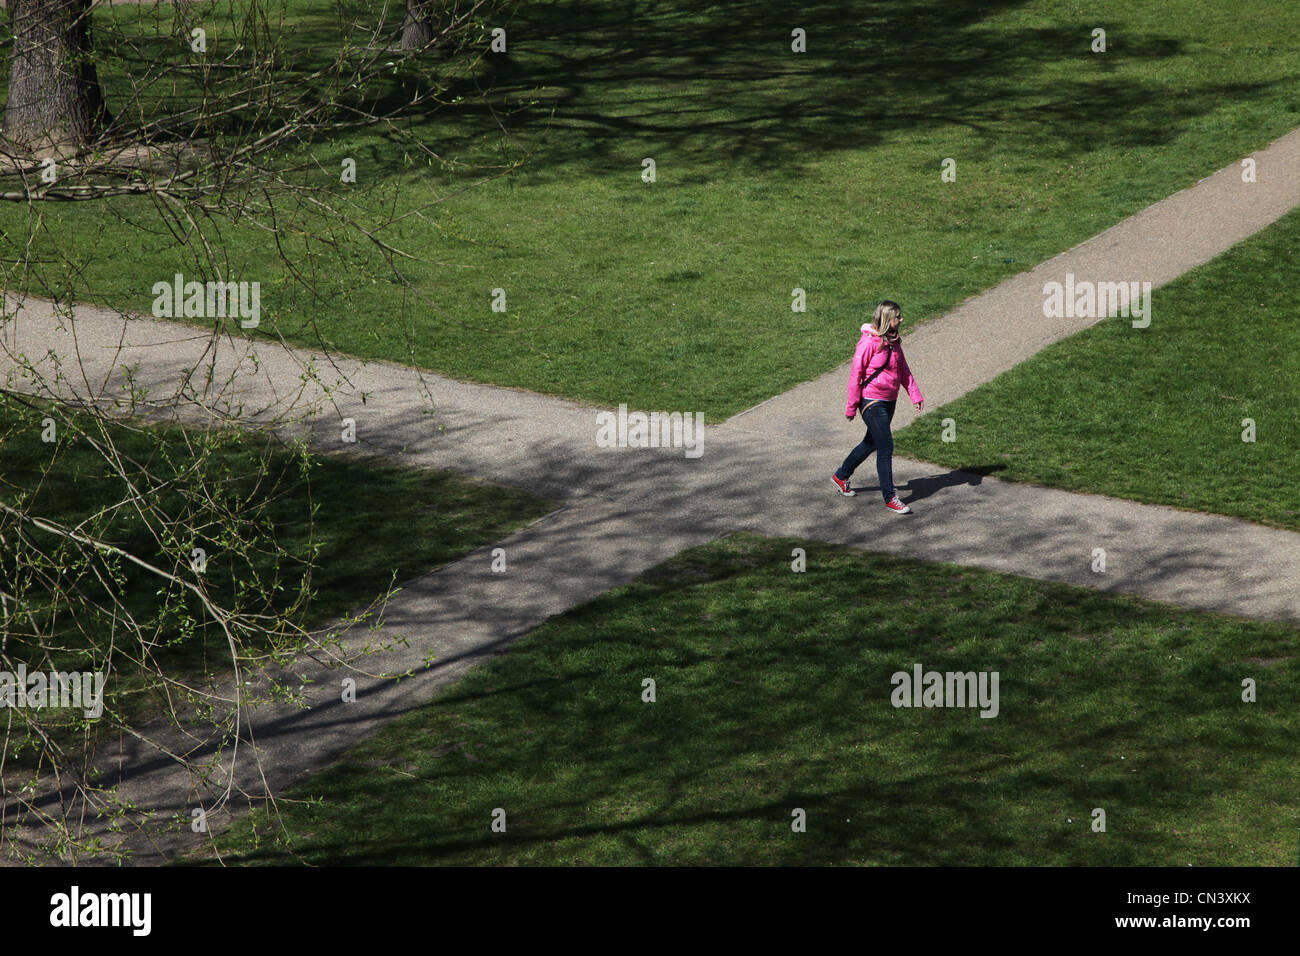 A woman at a crossroads path, making a choice about which way to go. - Stock Image